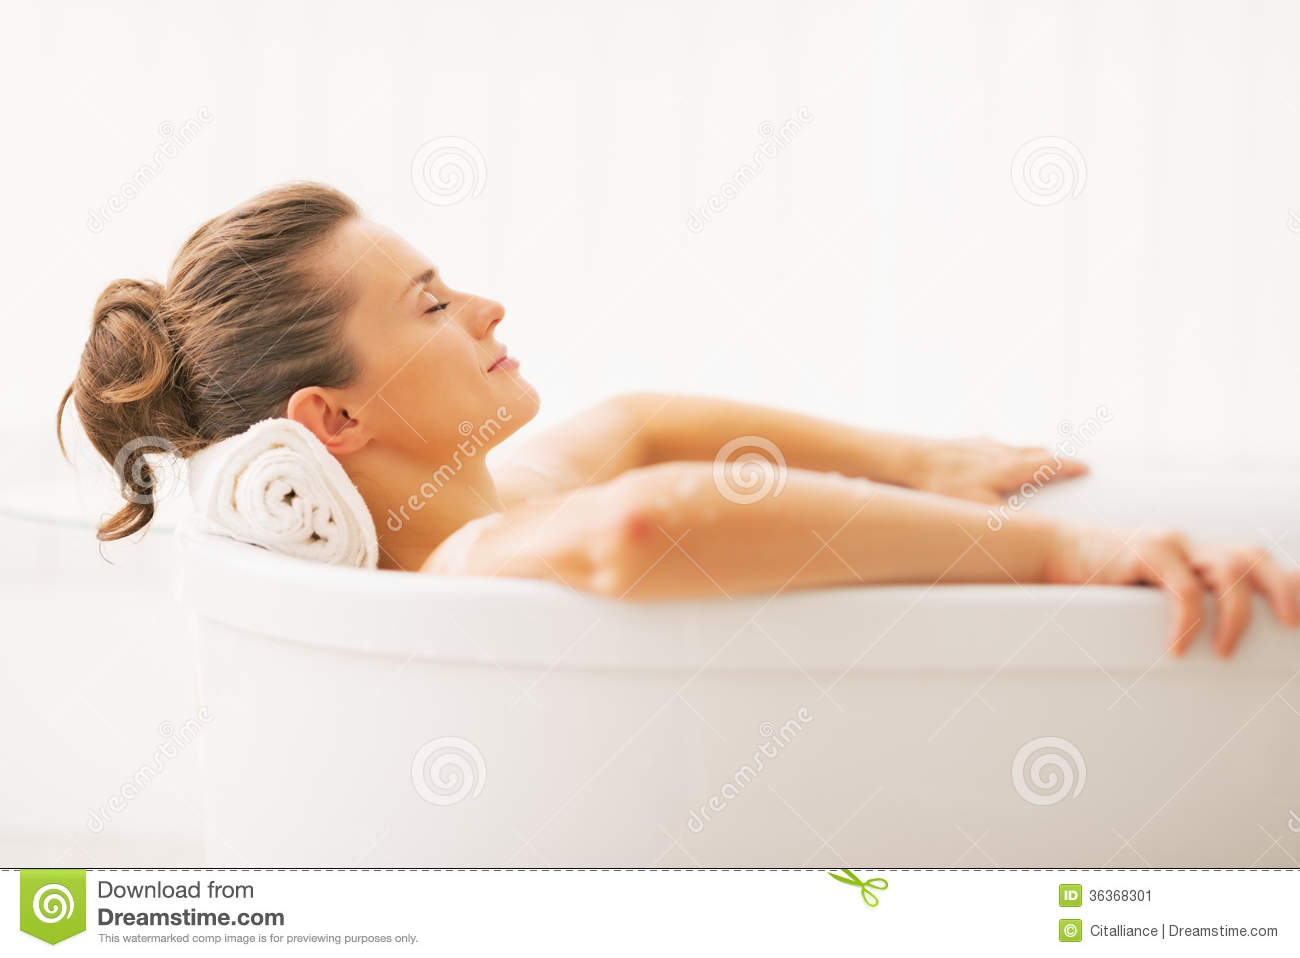 Portrait Of Young Woman Relaxing In Bathtub Stock Image - Image of ...